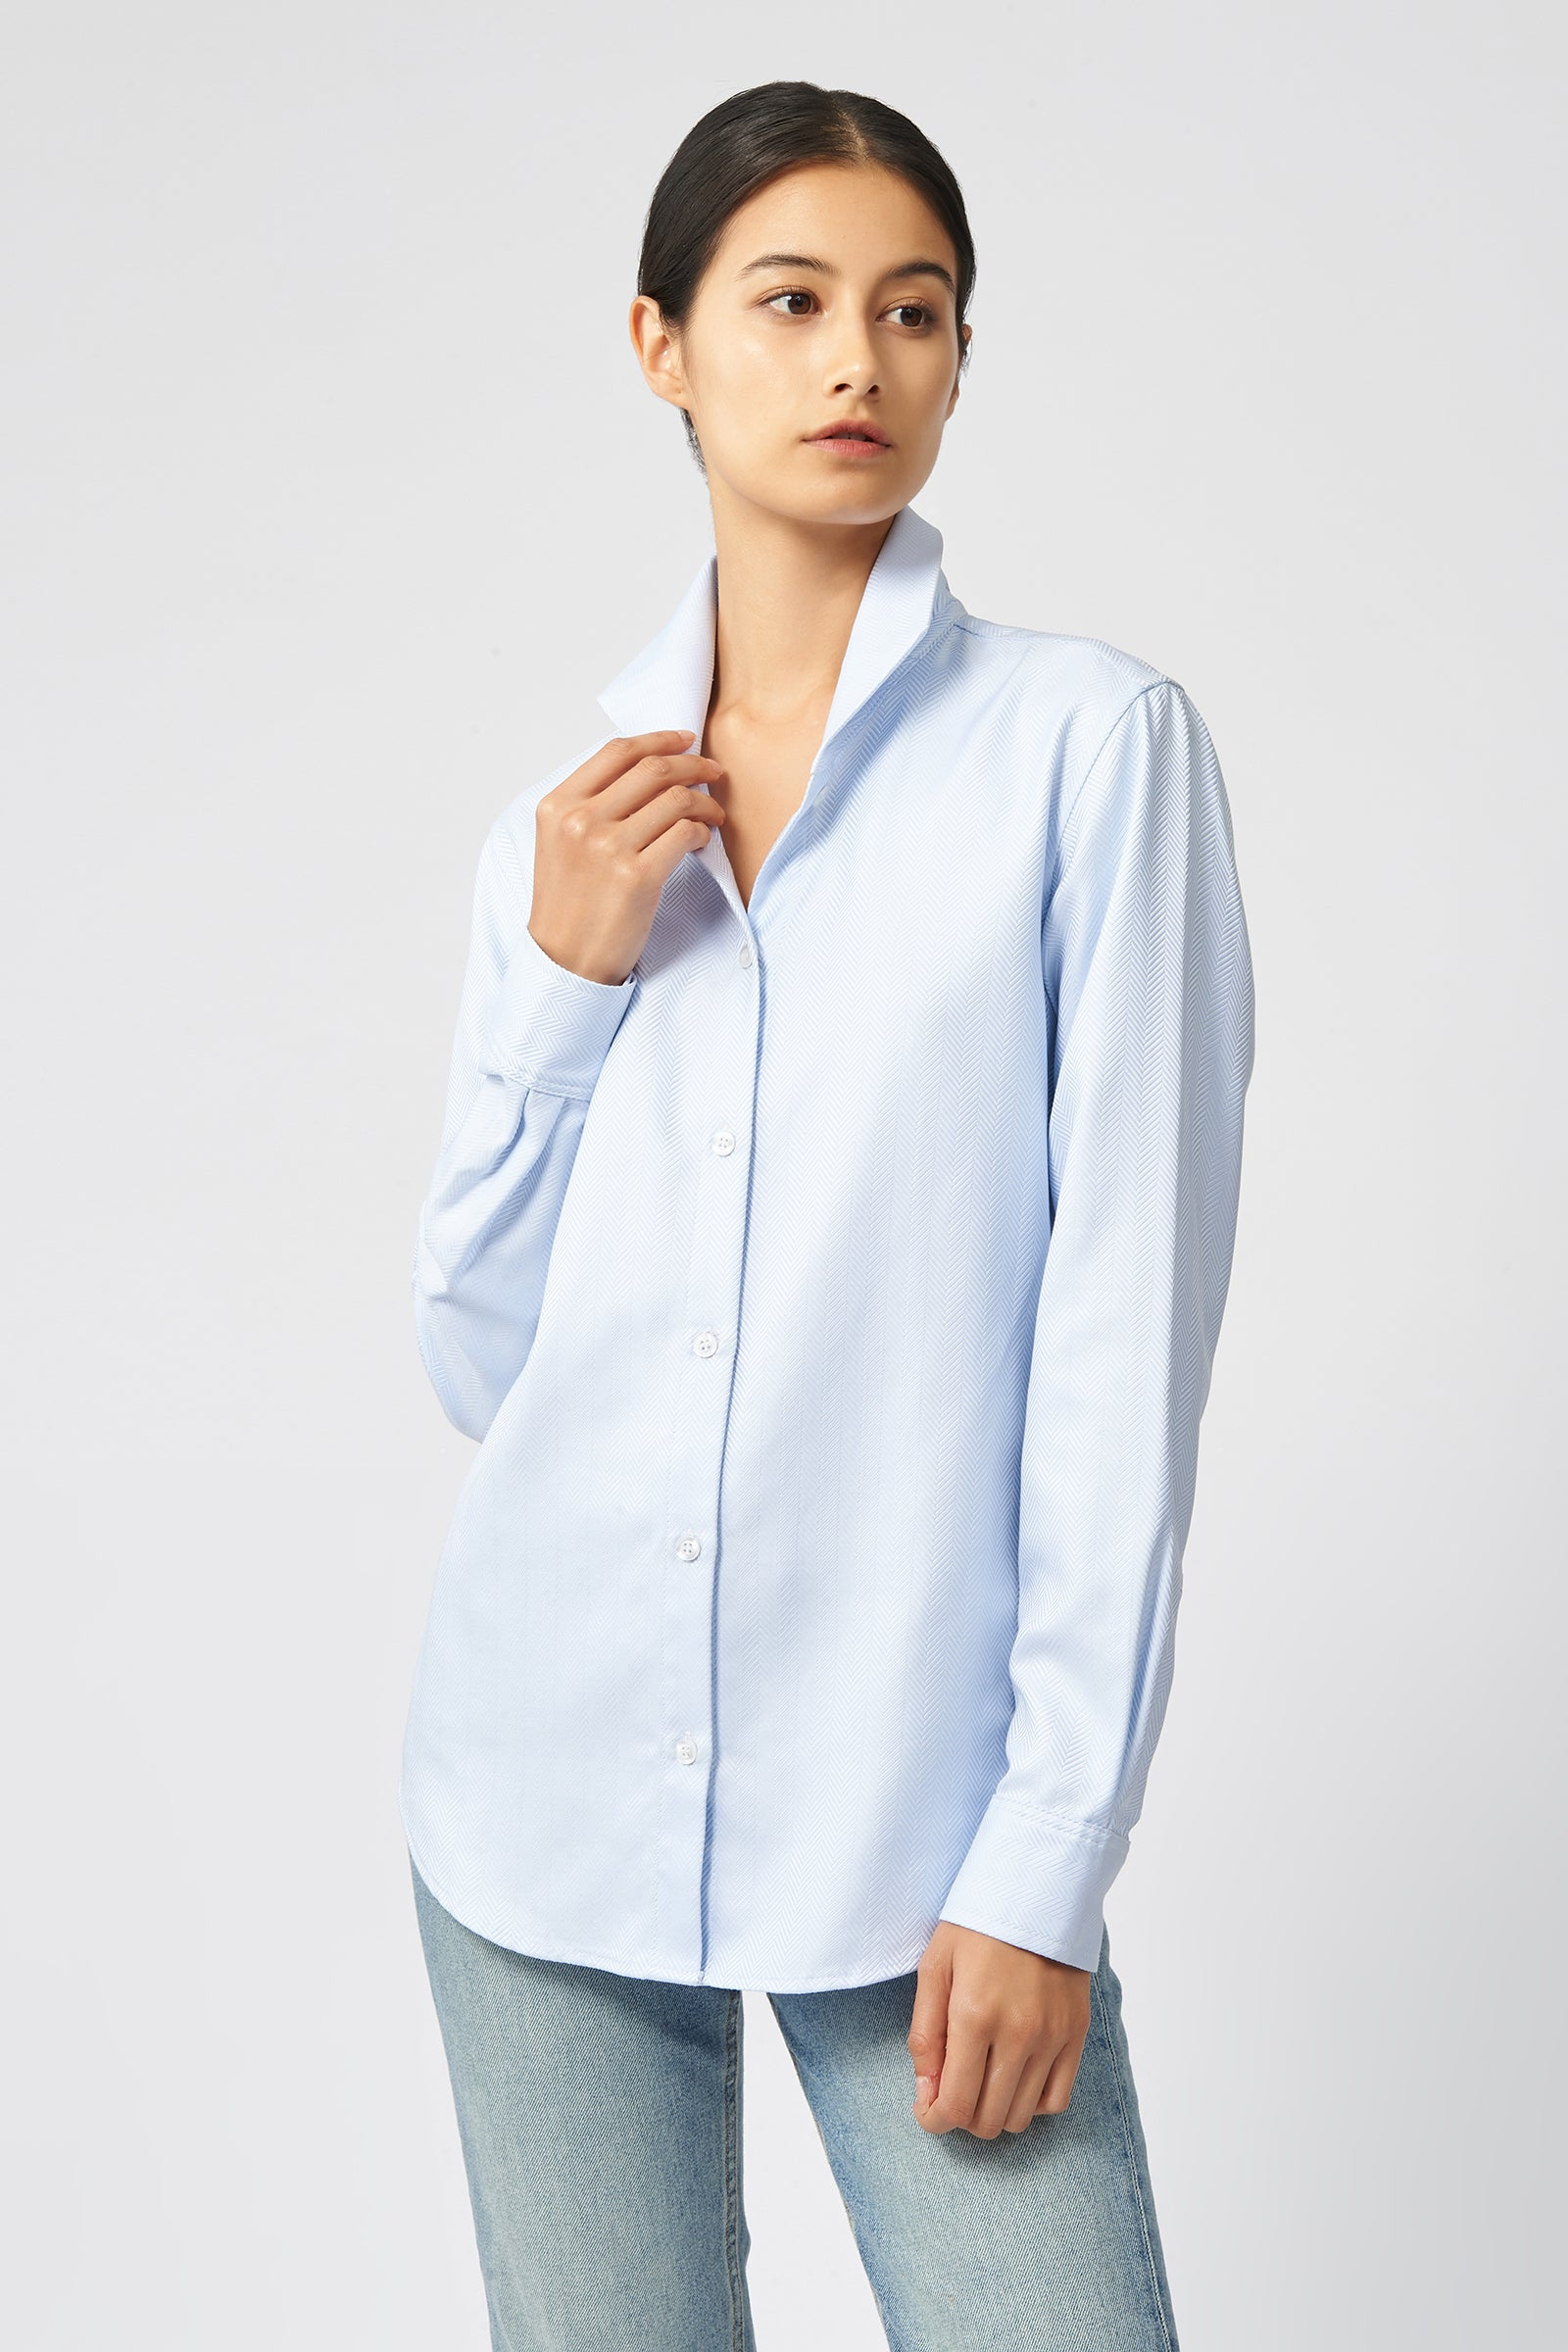 Kal Rieman Ginna Tailored Shirt in French Blue Herringbone on Model Front View